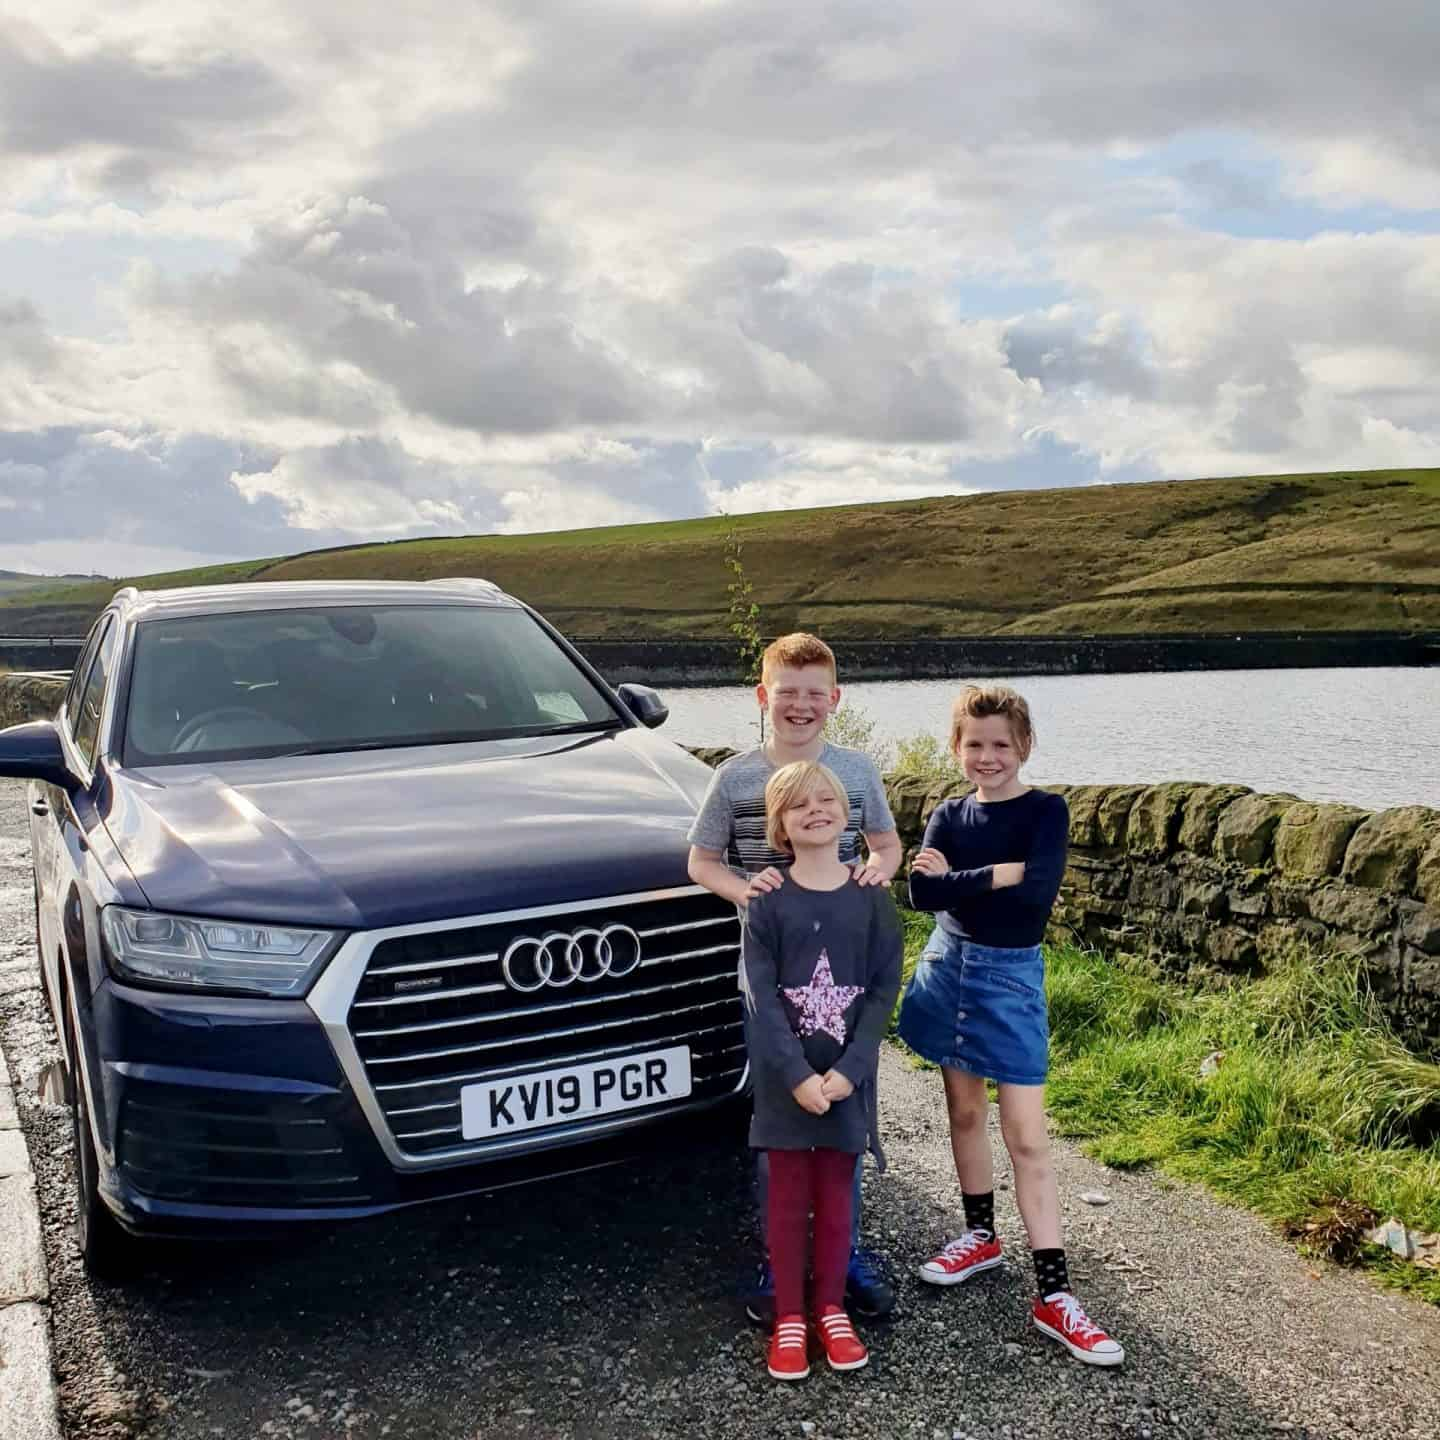 Audi Q7 review - seven seater SUV for family of five